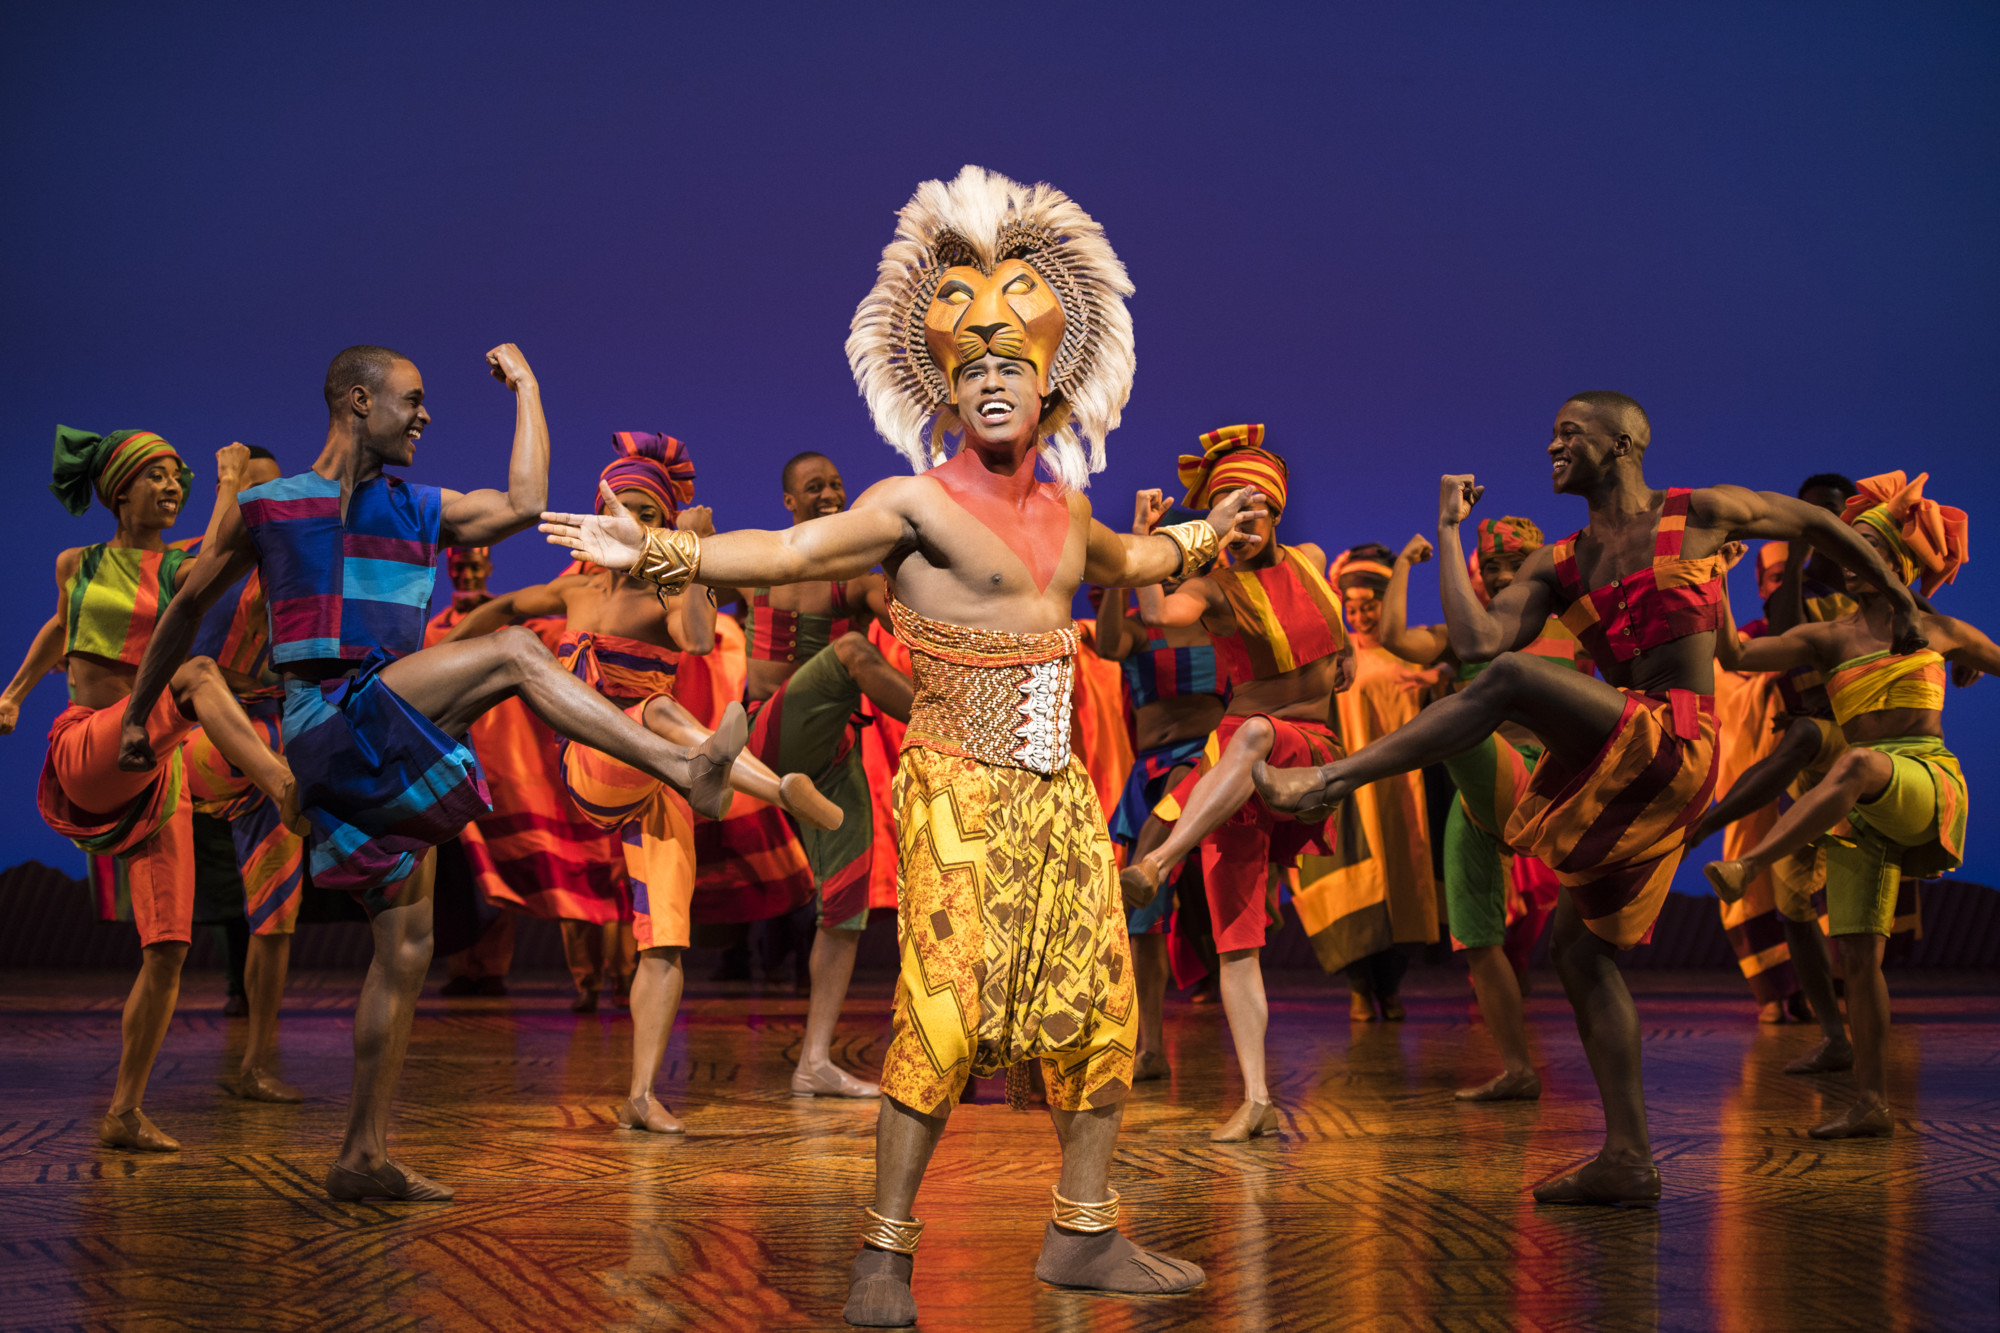 Jared Dixon as Simba heads an amazing cast in the new touring production of 'The Lion King.' (photo: Deen van Meer, © Disney)